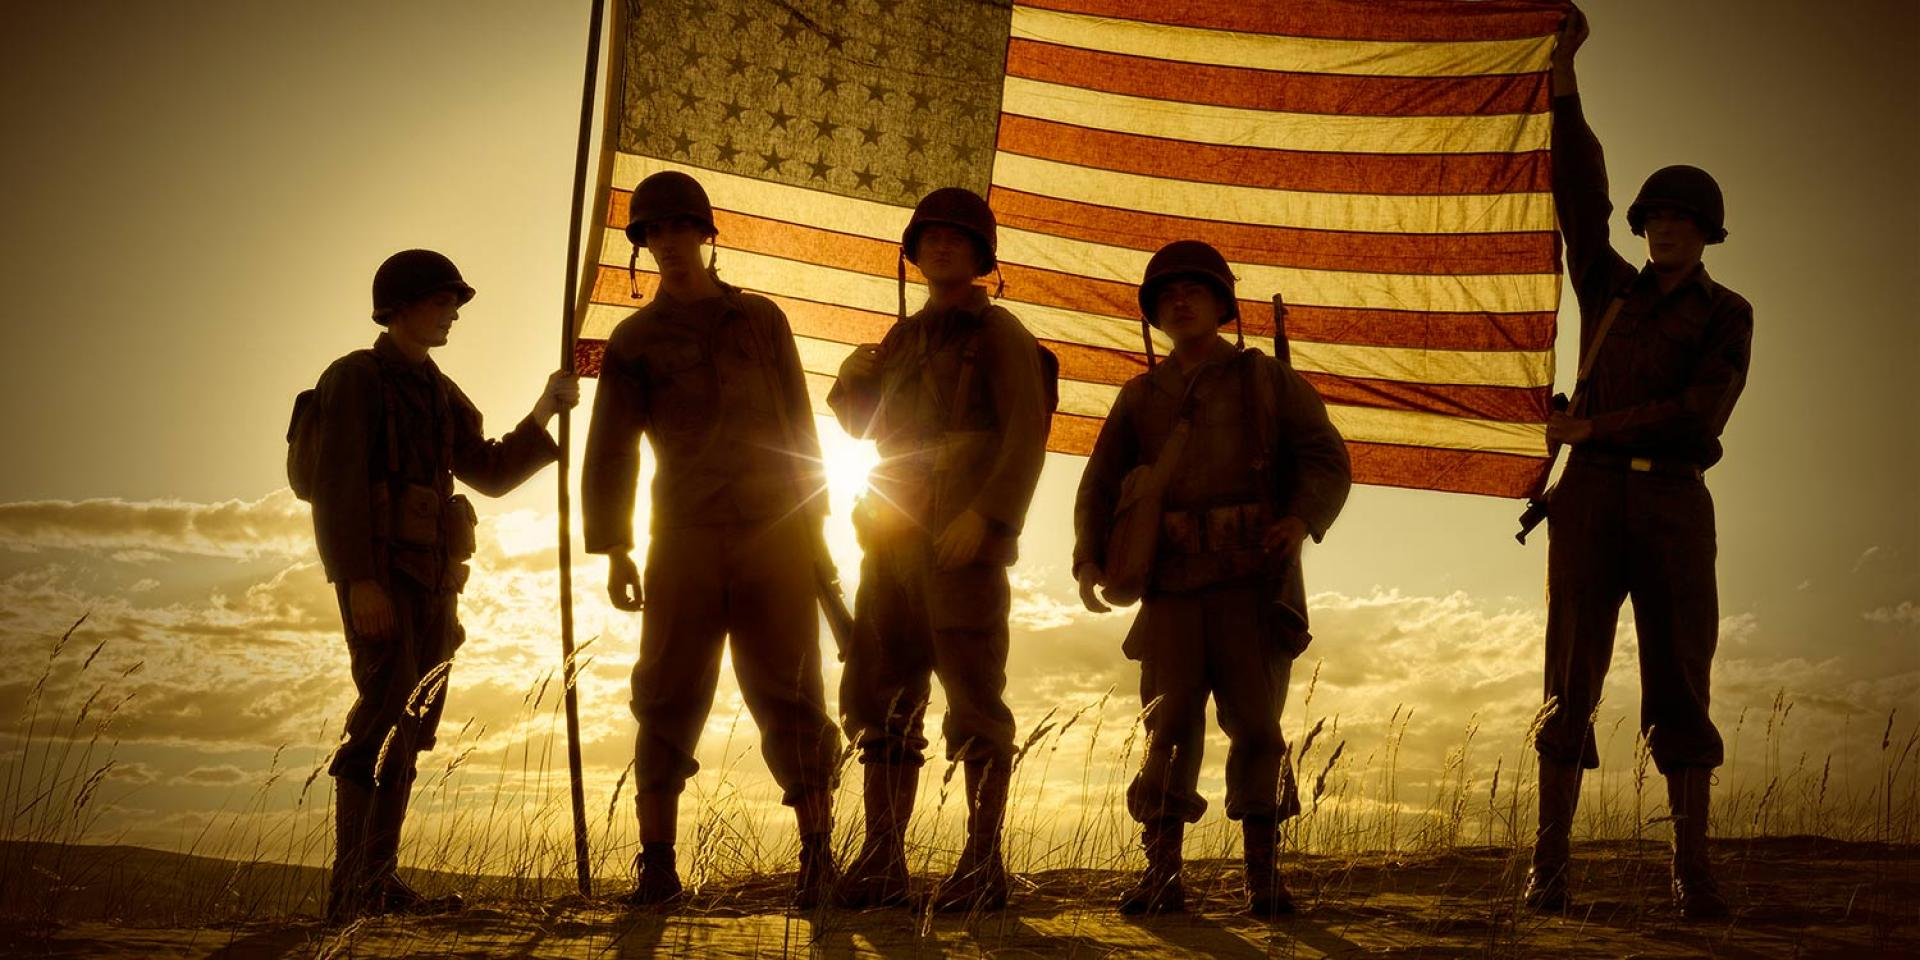 Photo of American soldiers holding up flag and silhouetted by the sun in the background